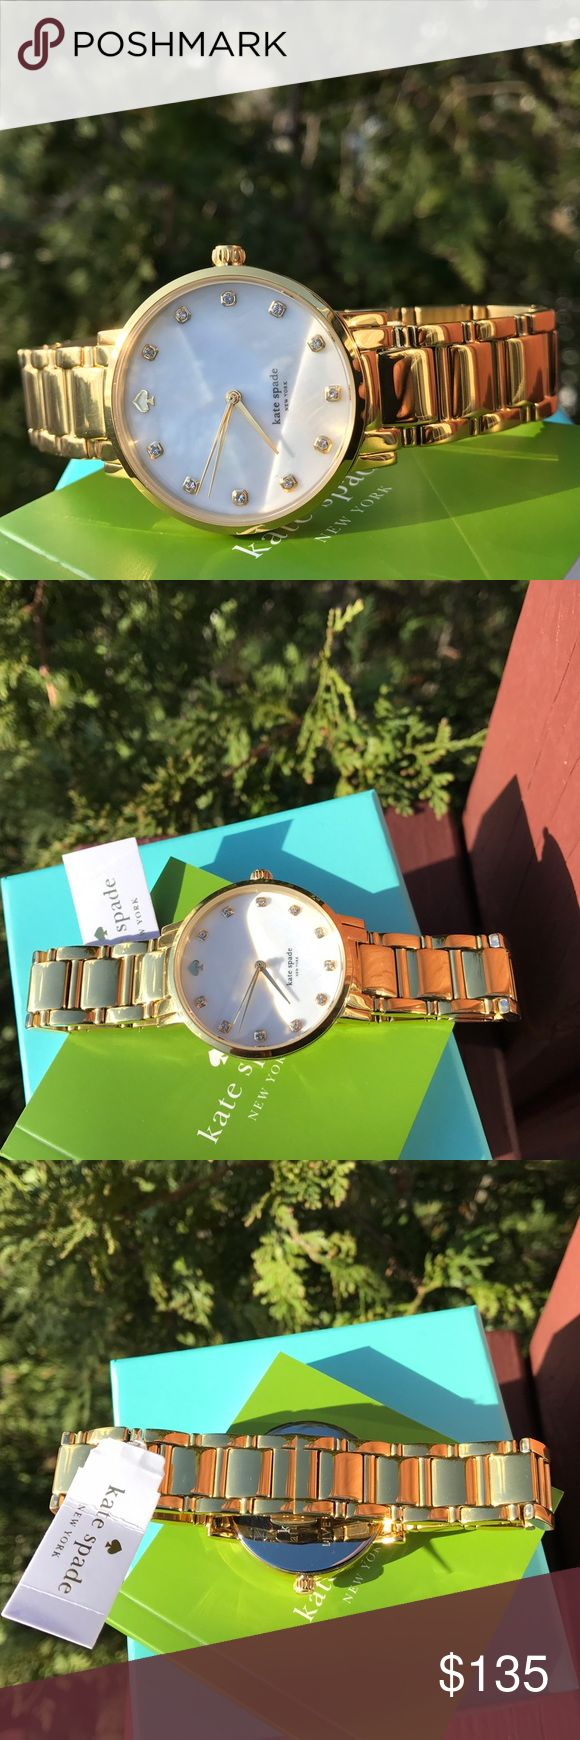 New Kate Spade Gramercy Gold Watch 1YRU0007 LAST 1! * Authentic 1YRU0007 * Model: Gramercy  * Retail: $250 * Gold stainless steel  * New with Kate Spade watch box and owners booklet included  * 34mm Mother-Of-Pearl dial  * 3 ATM  * UPC: 098686232341 * WHAT A BEAUTY!  No trades. Buy now or offer only / Same business day shipping. kate spade Accessories Watches